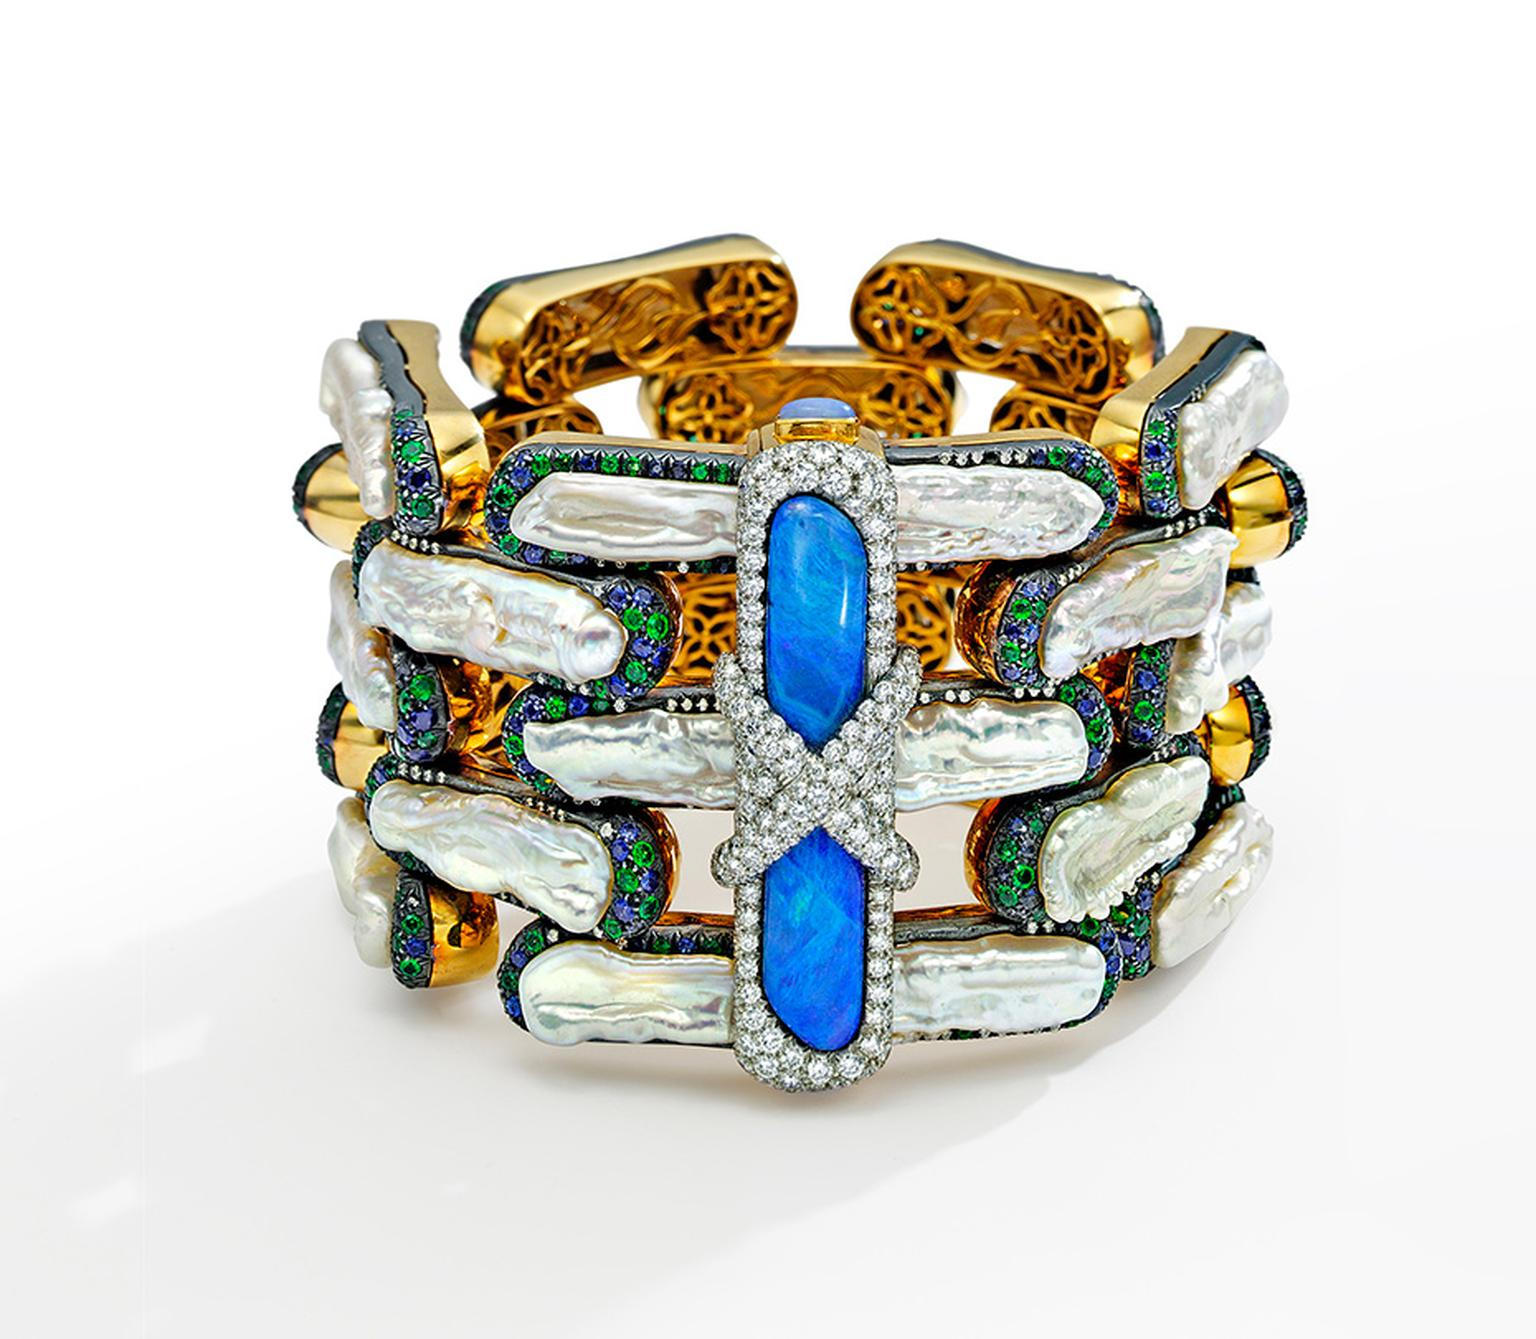 Nicholas Varney five row Brick bracelet featuring freshwater pearl, black opal, sapphire, emerald, diamond and gold.